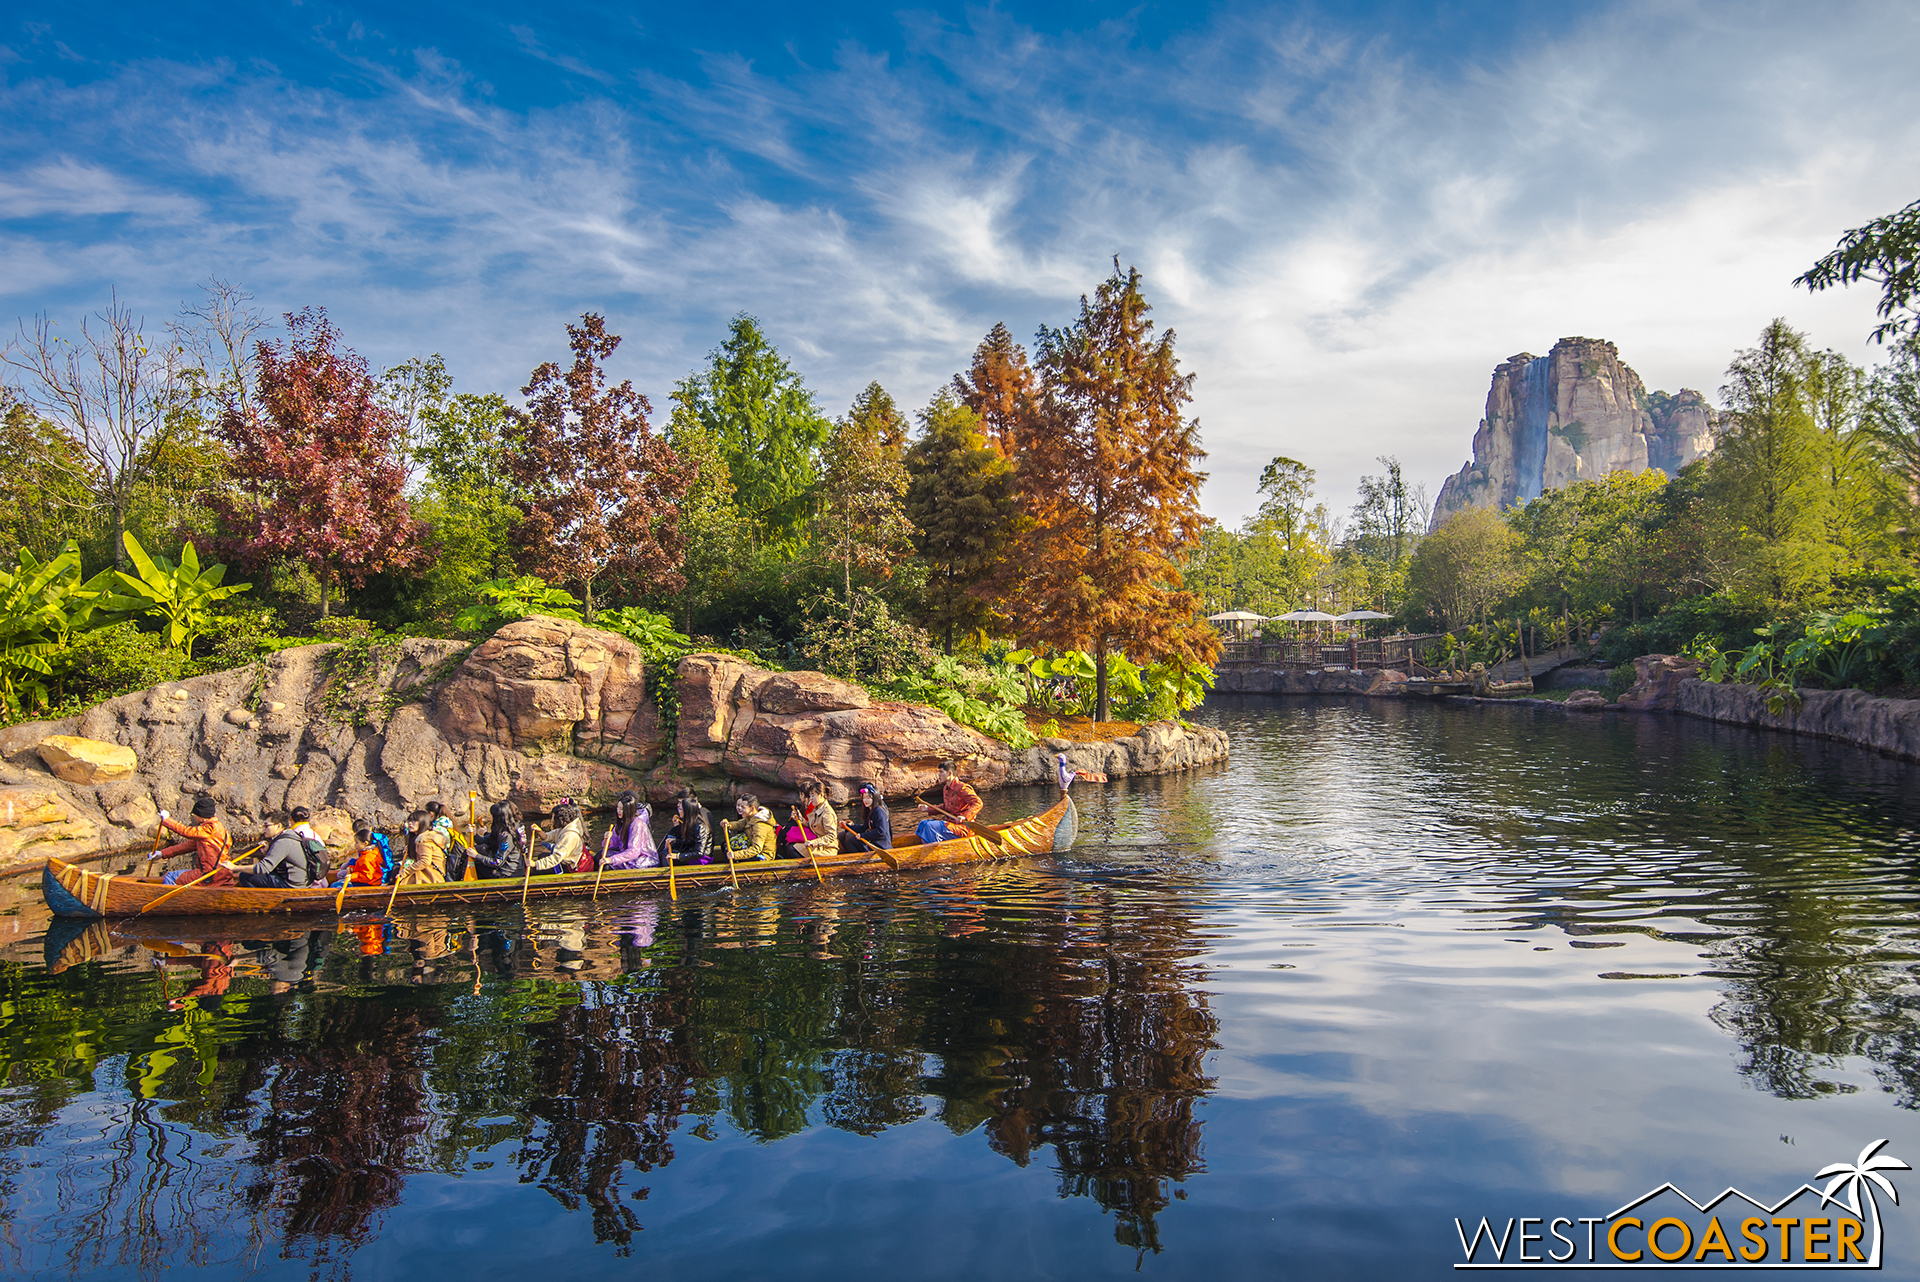 Canoe paddlers row through a waterway, past Roaring Mountain in the distance.